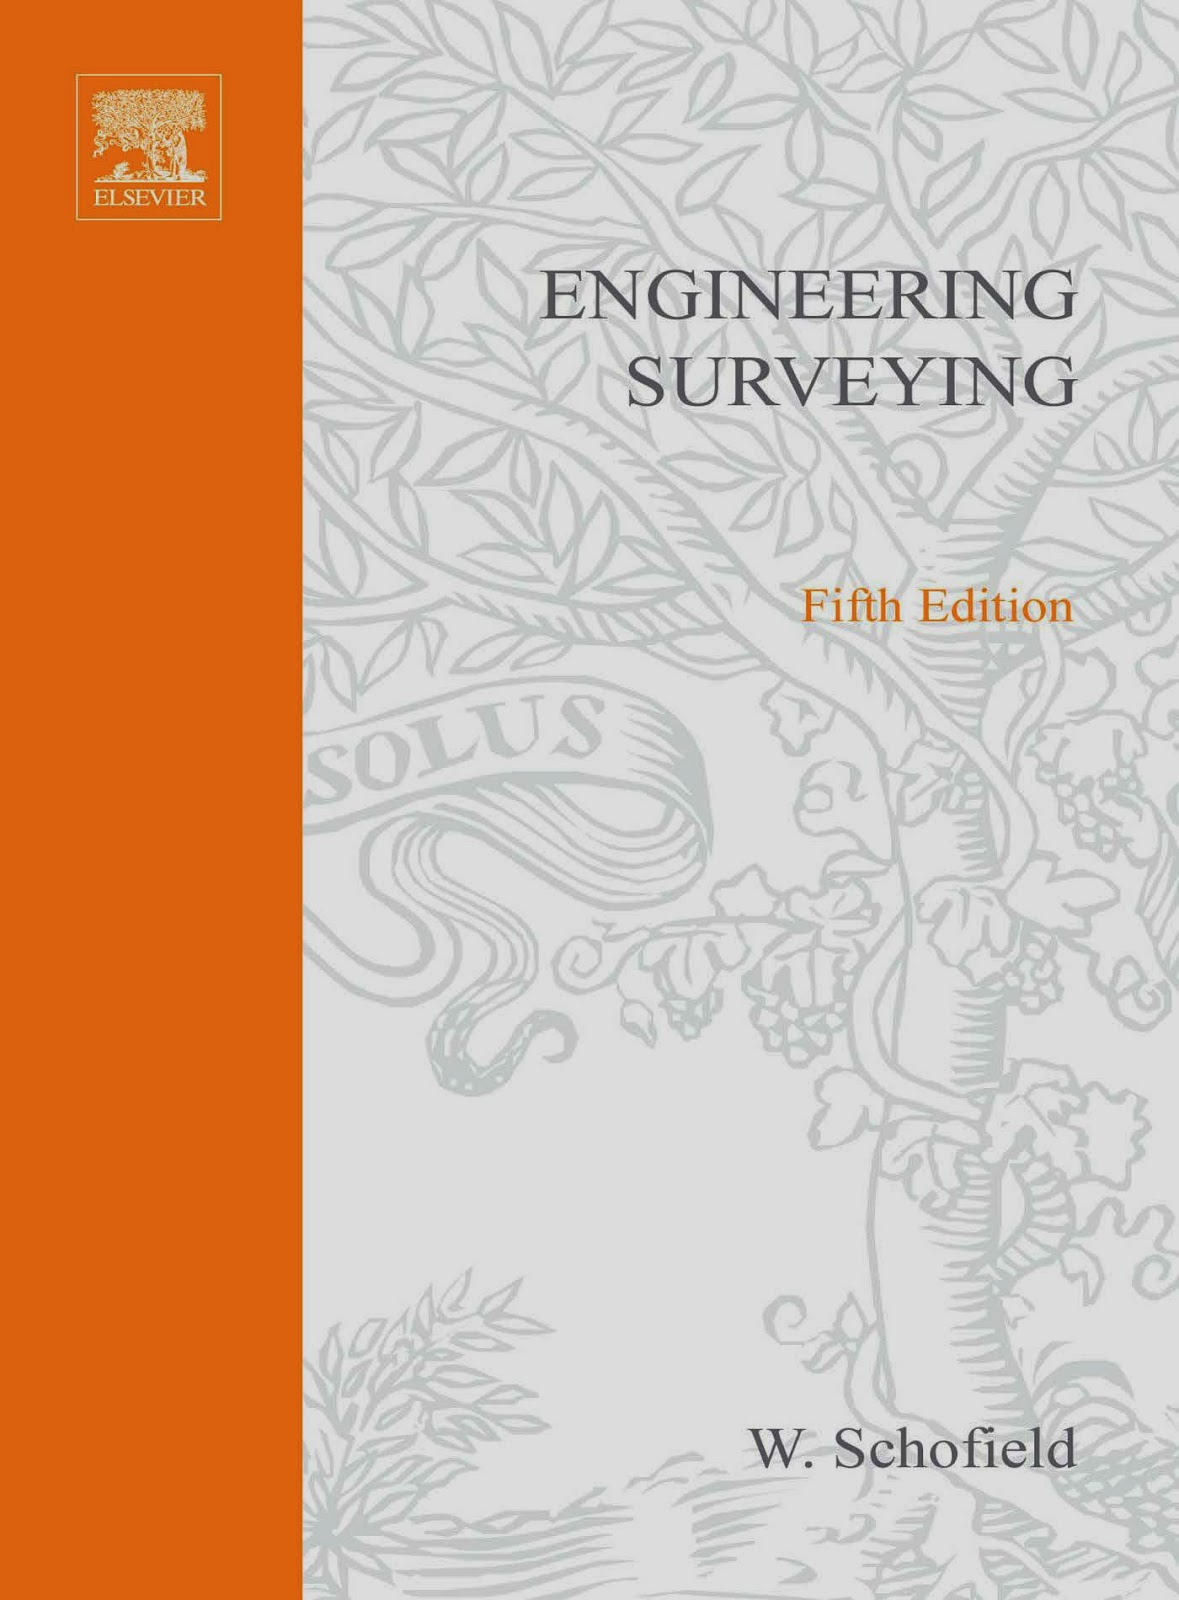 Book: Engineering Surveying 5th Edition by W. Schofield